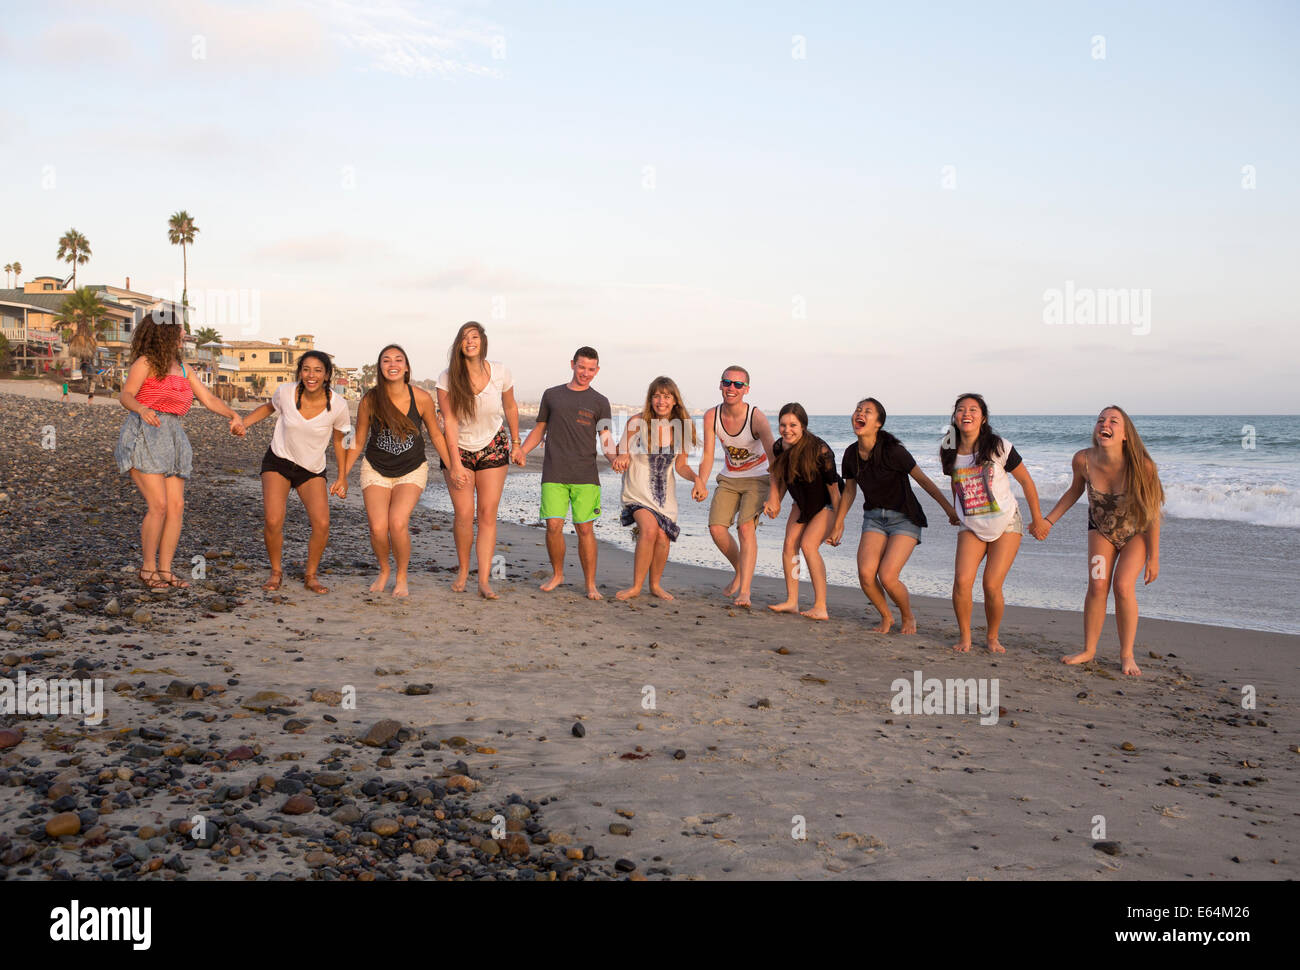 Young adults, teenagers, Capistrano Beach, aka Capo Beach, city of Dana Point, Orange County, California, United States Stock Photo